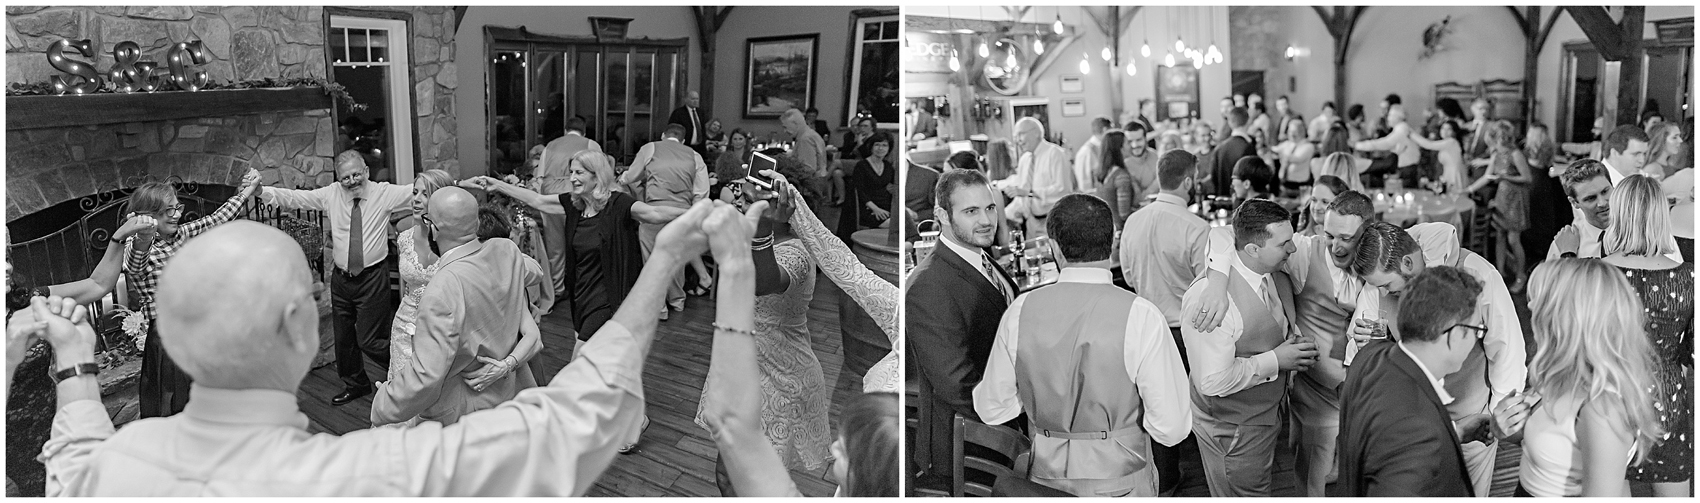 caitlinsean-creeksedgewinery-lovettsville-virginia-wedding00076